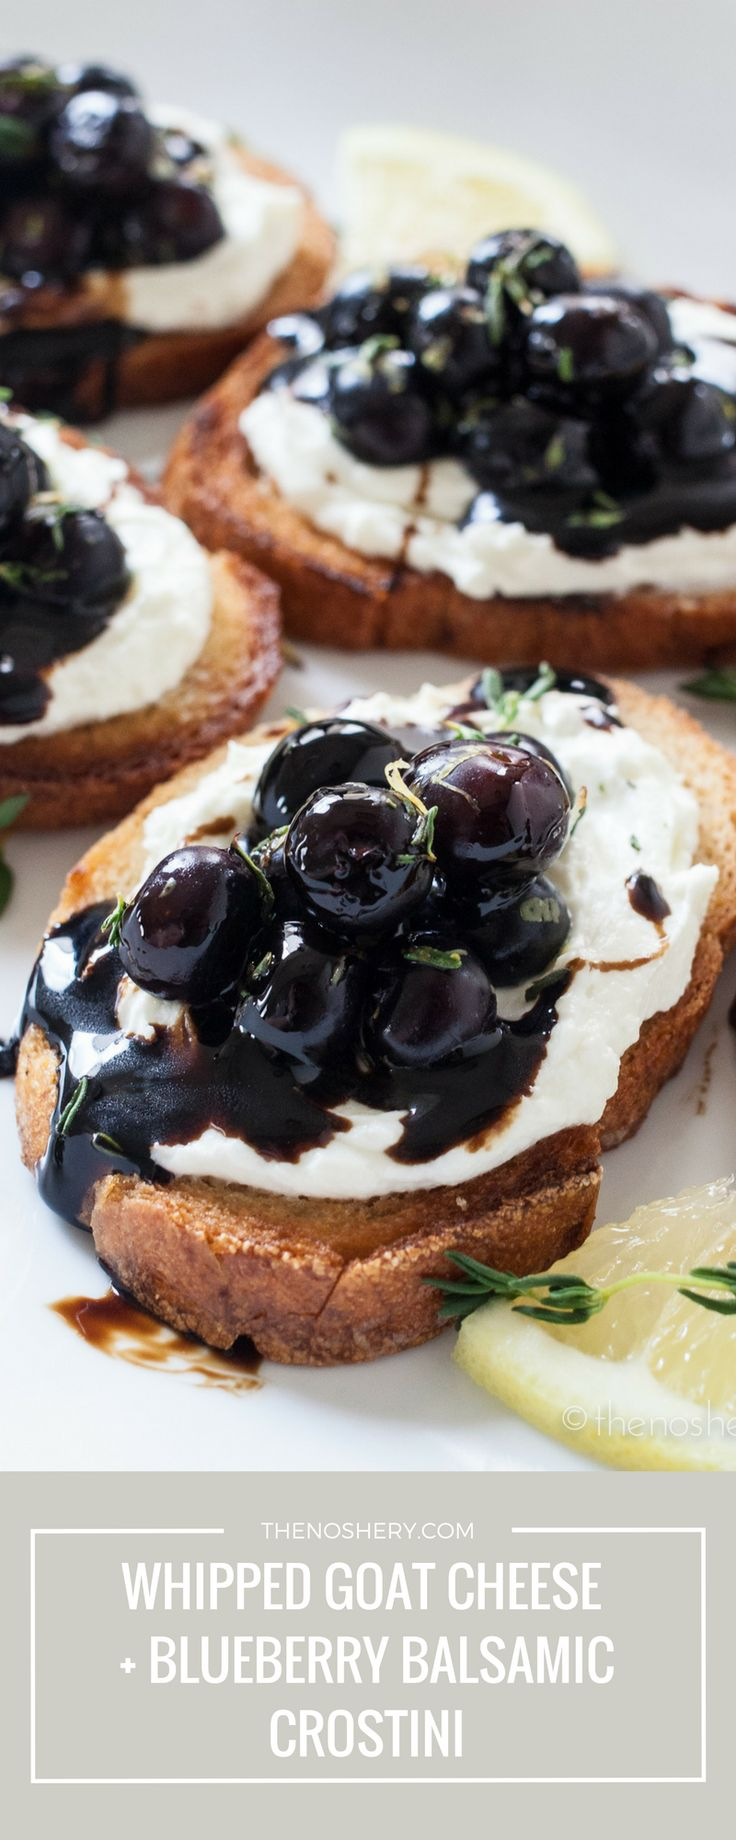 Whipped Goat Cheese and Blueberry Balsamic Crostini | http://thenoshery.com/?utm_campaign=coschedule&utm_source=pinterest&utm_medium=The%20Noshery&utm_content=Whipped%20Goat%20Cheese%20and%20Blueberry%20Balsamic%20Crostini